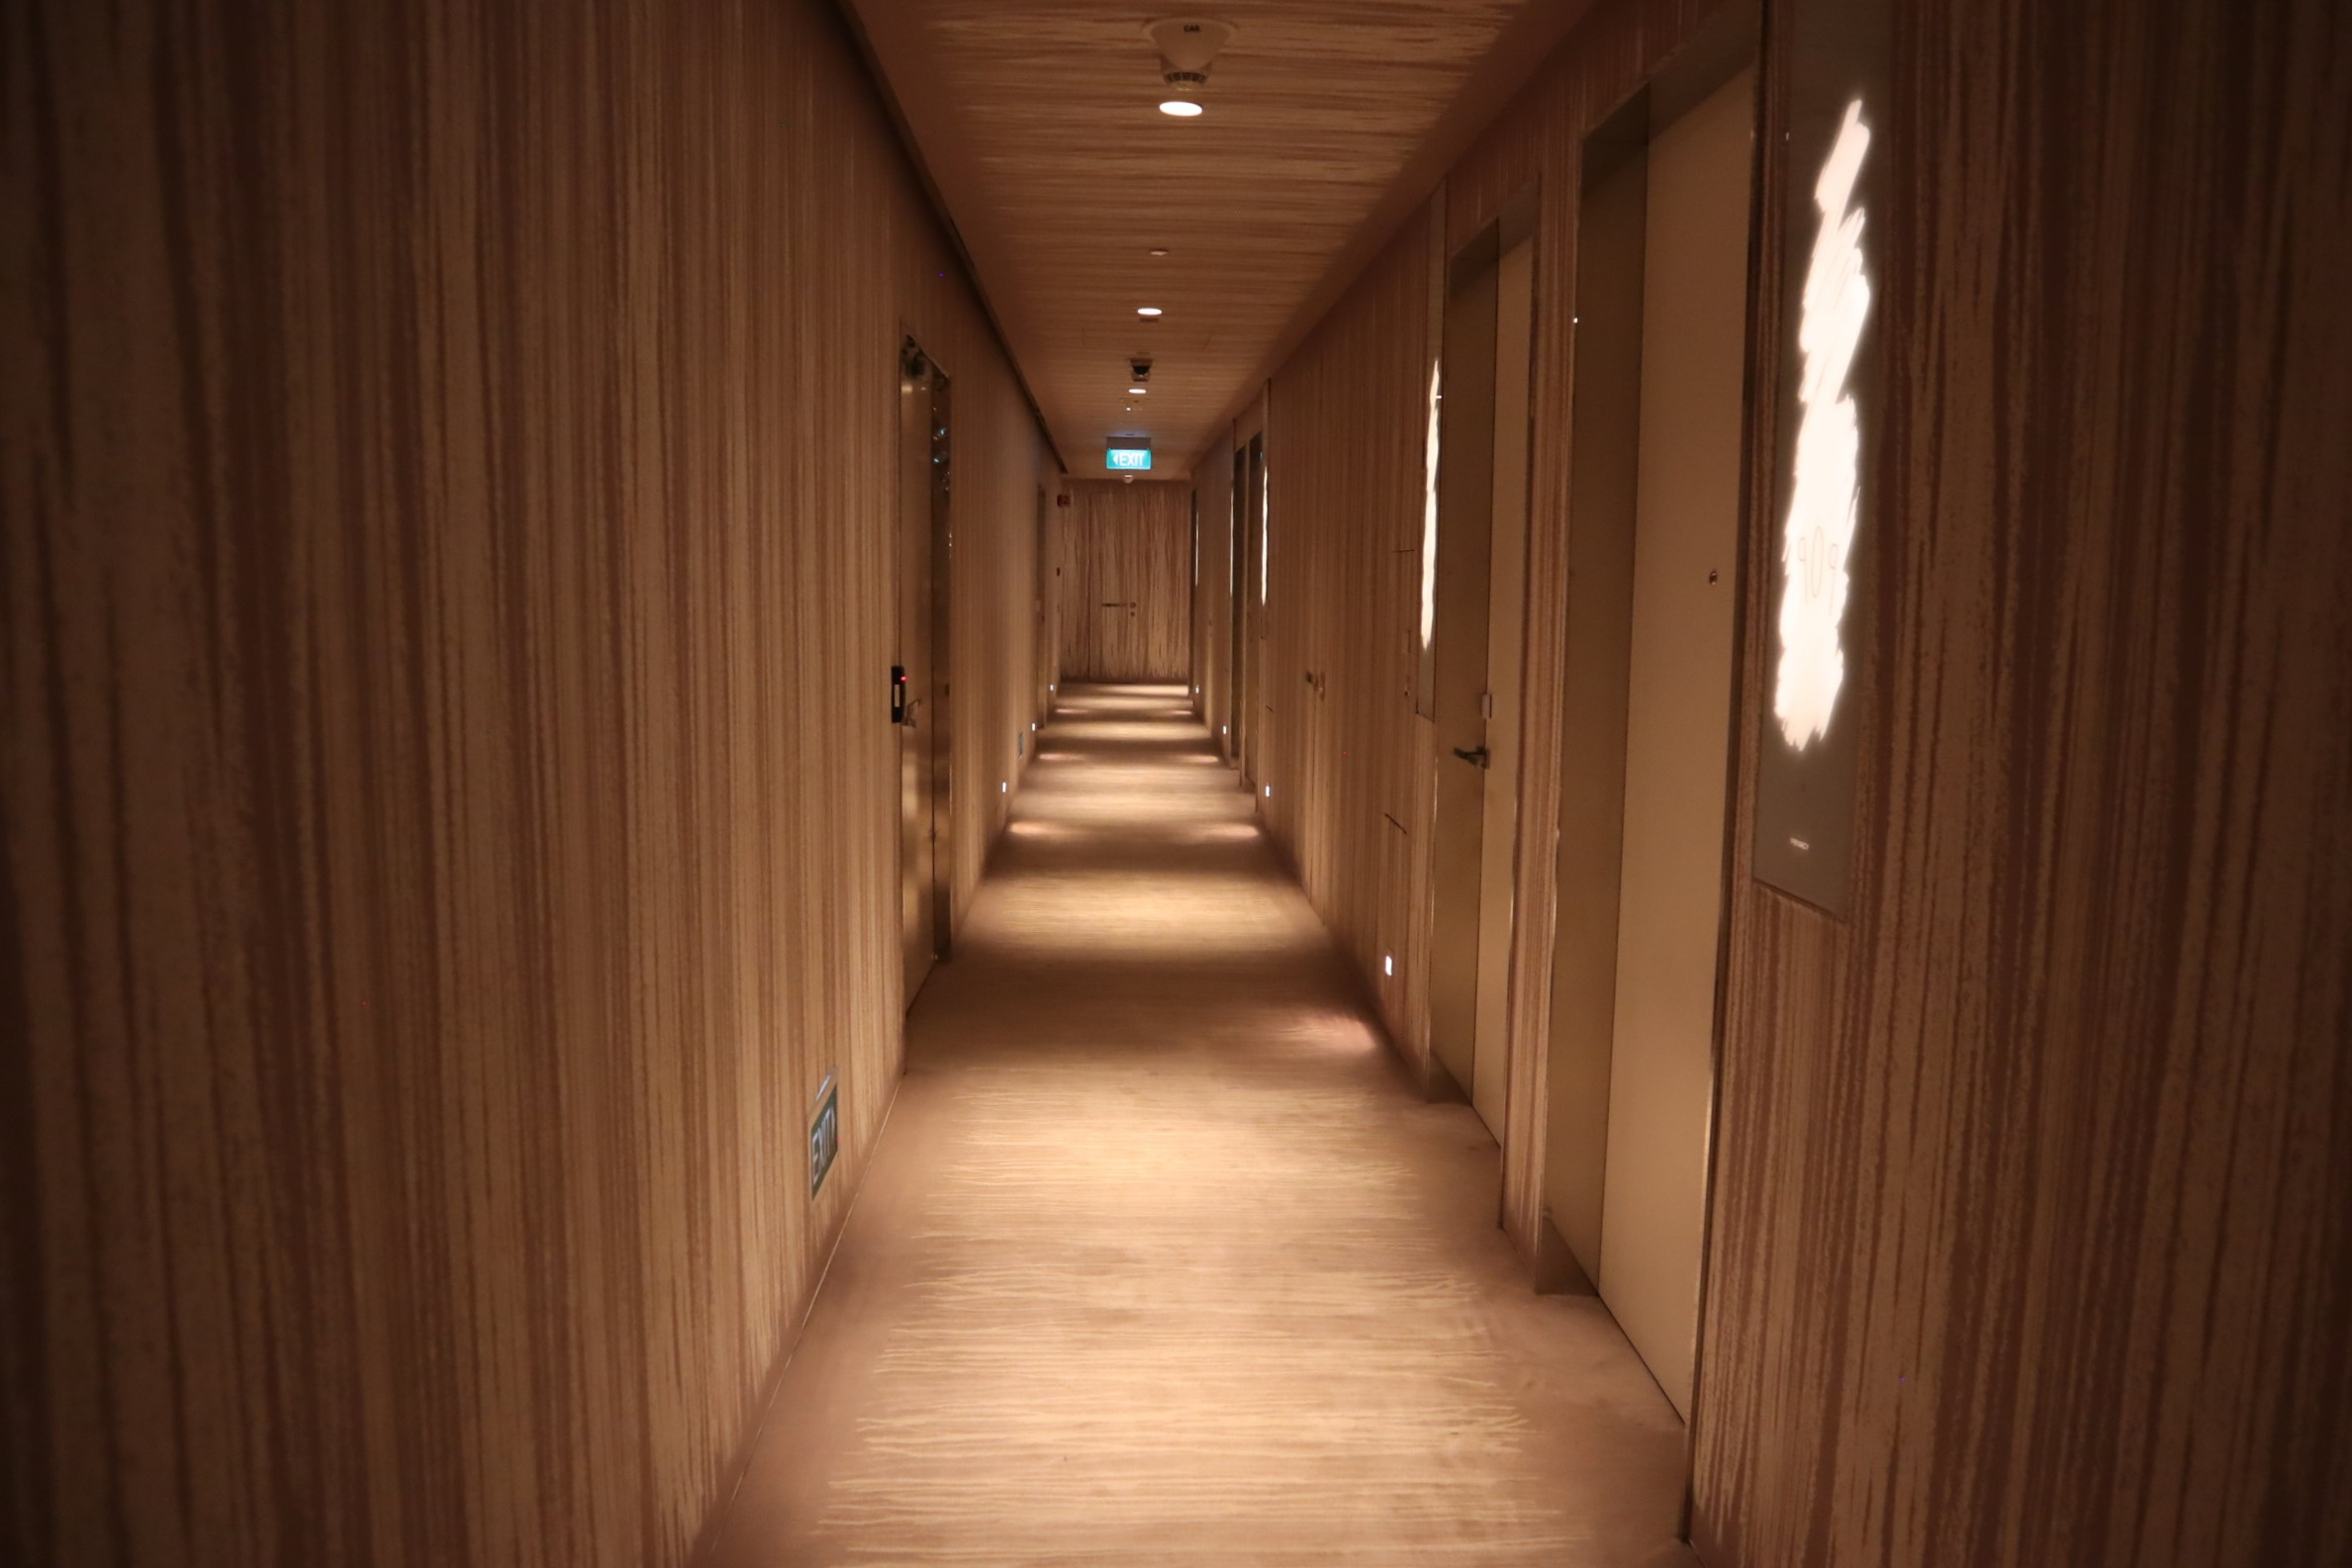 JW Marriott Singapore South Beach – Hallway